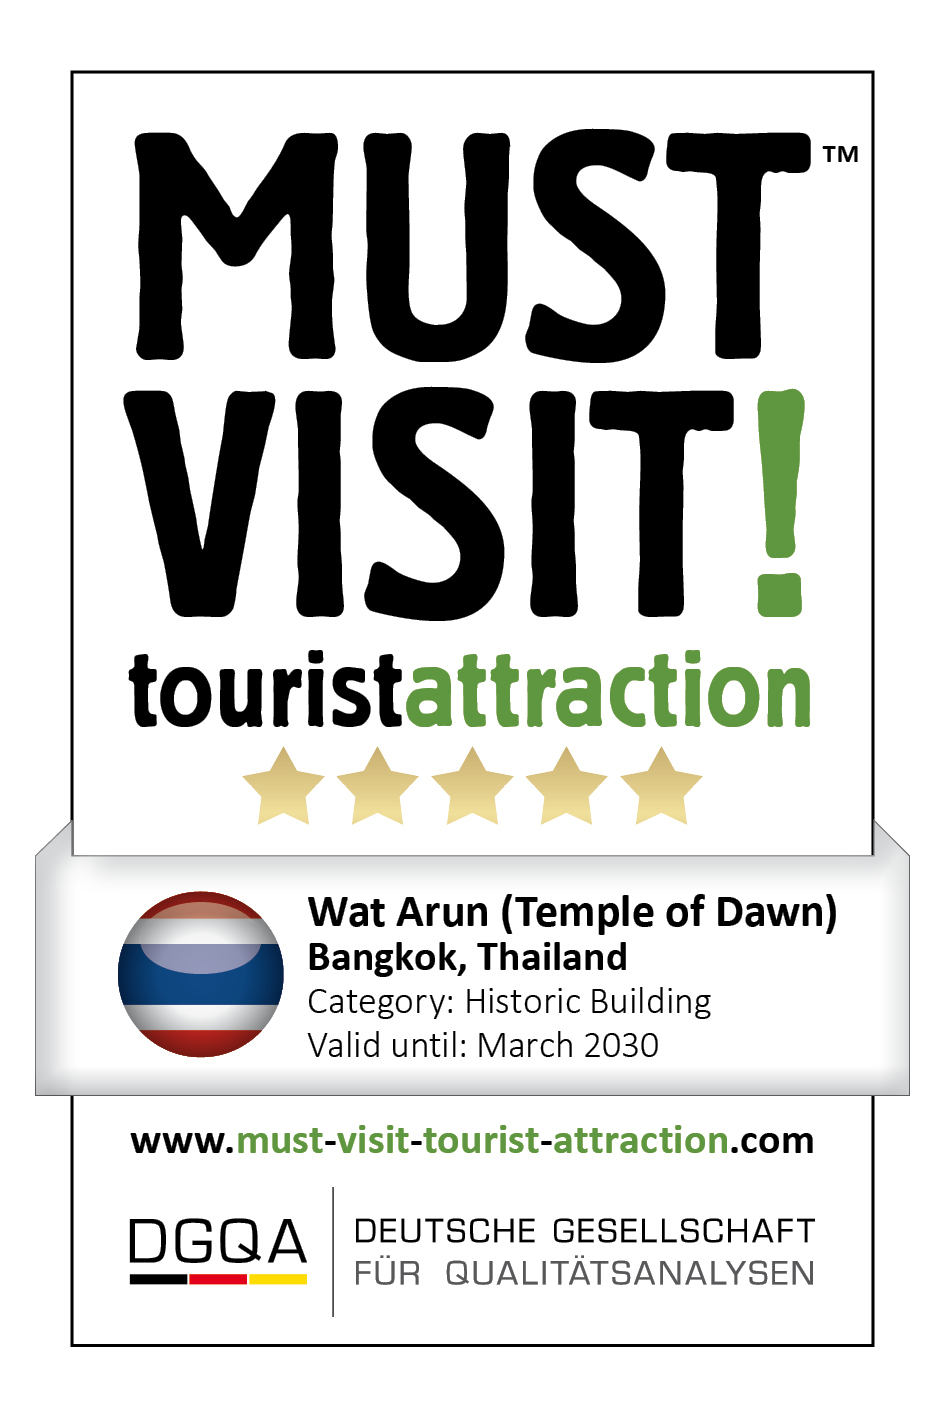 MUST VISIT! tourist attraction (dgqa) wat arun